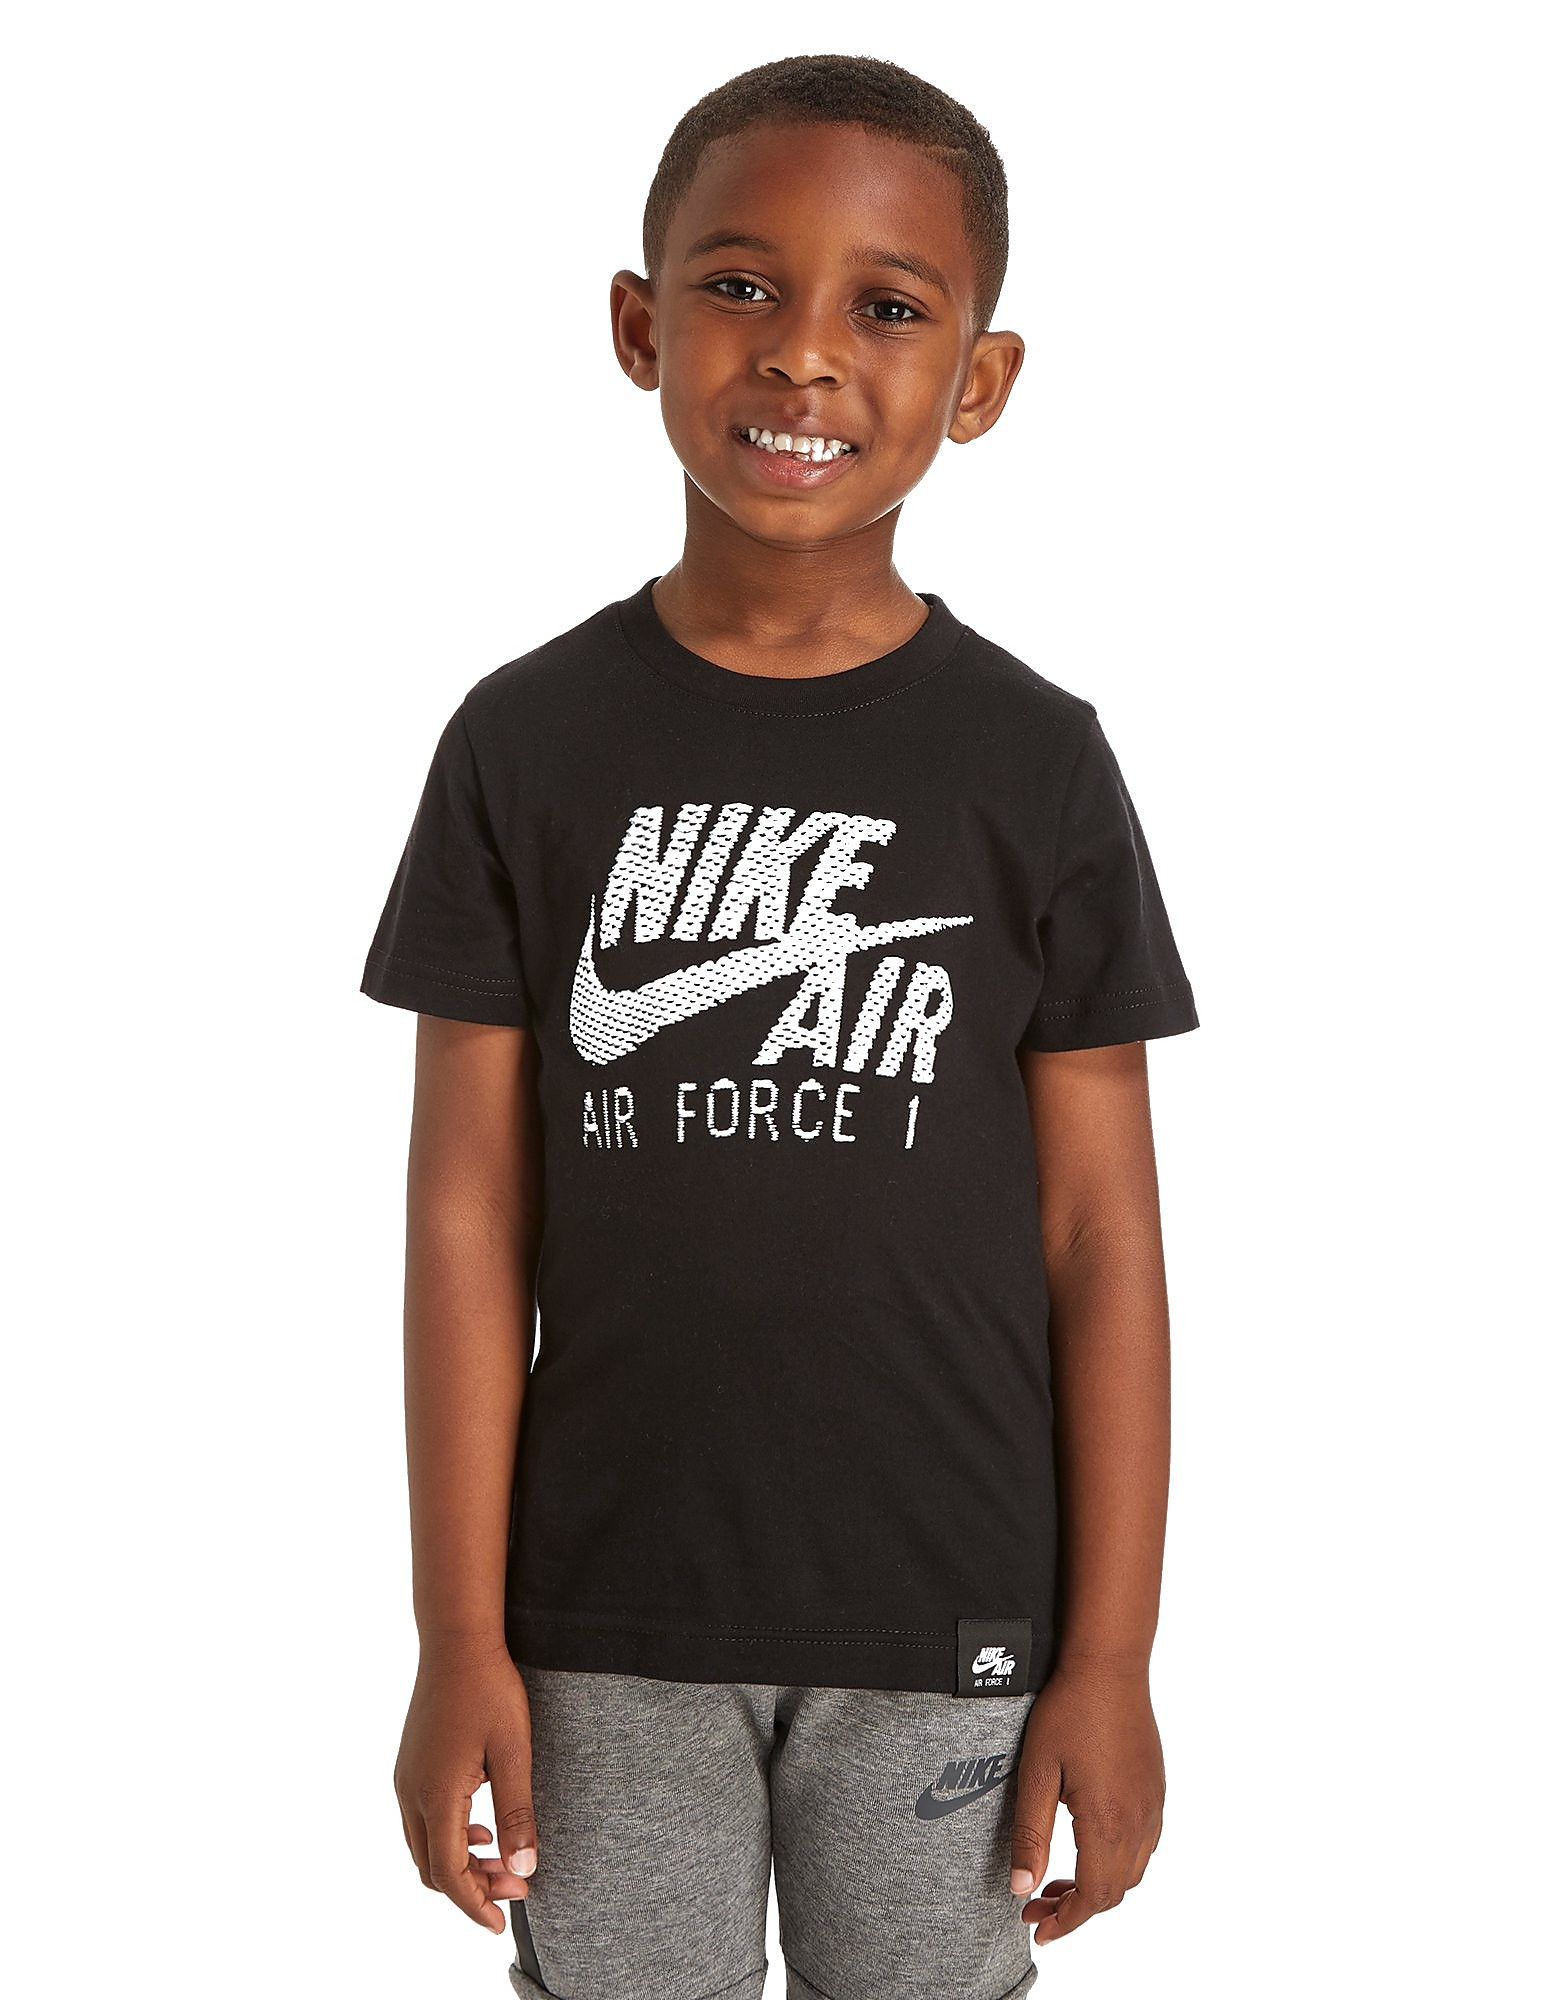 Nike Air Force 1 T-Shirt Children